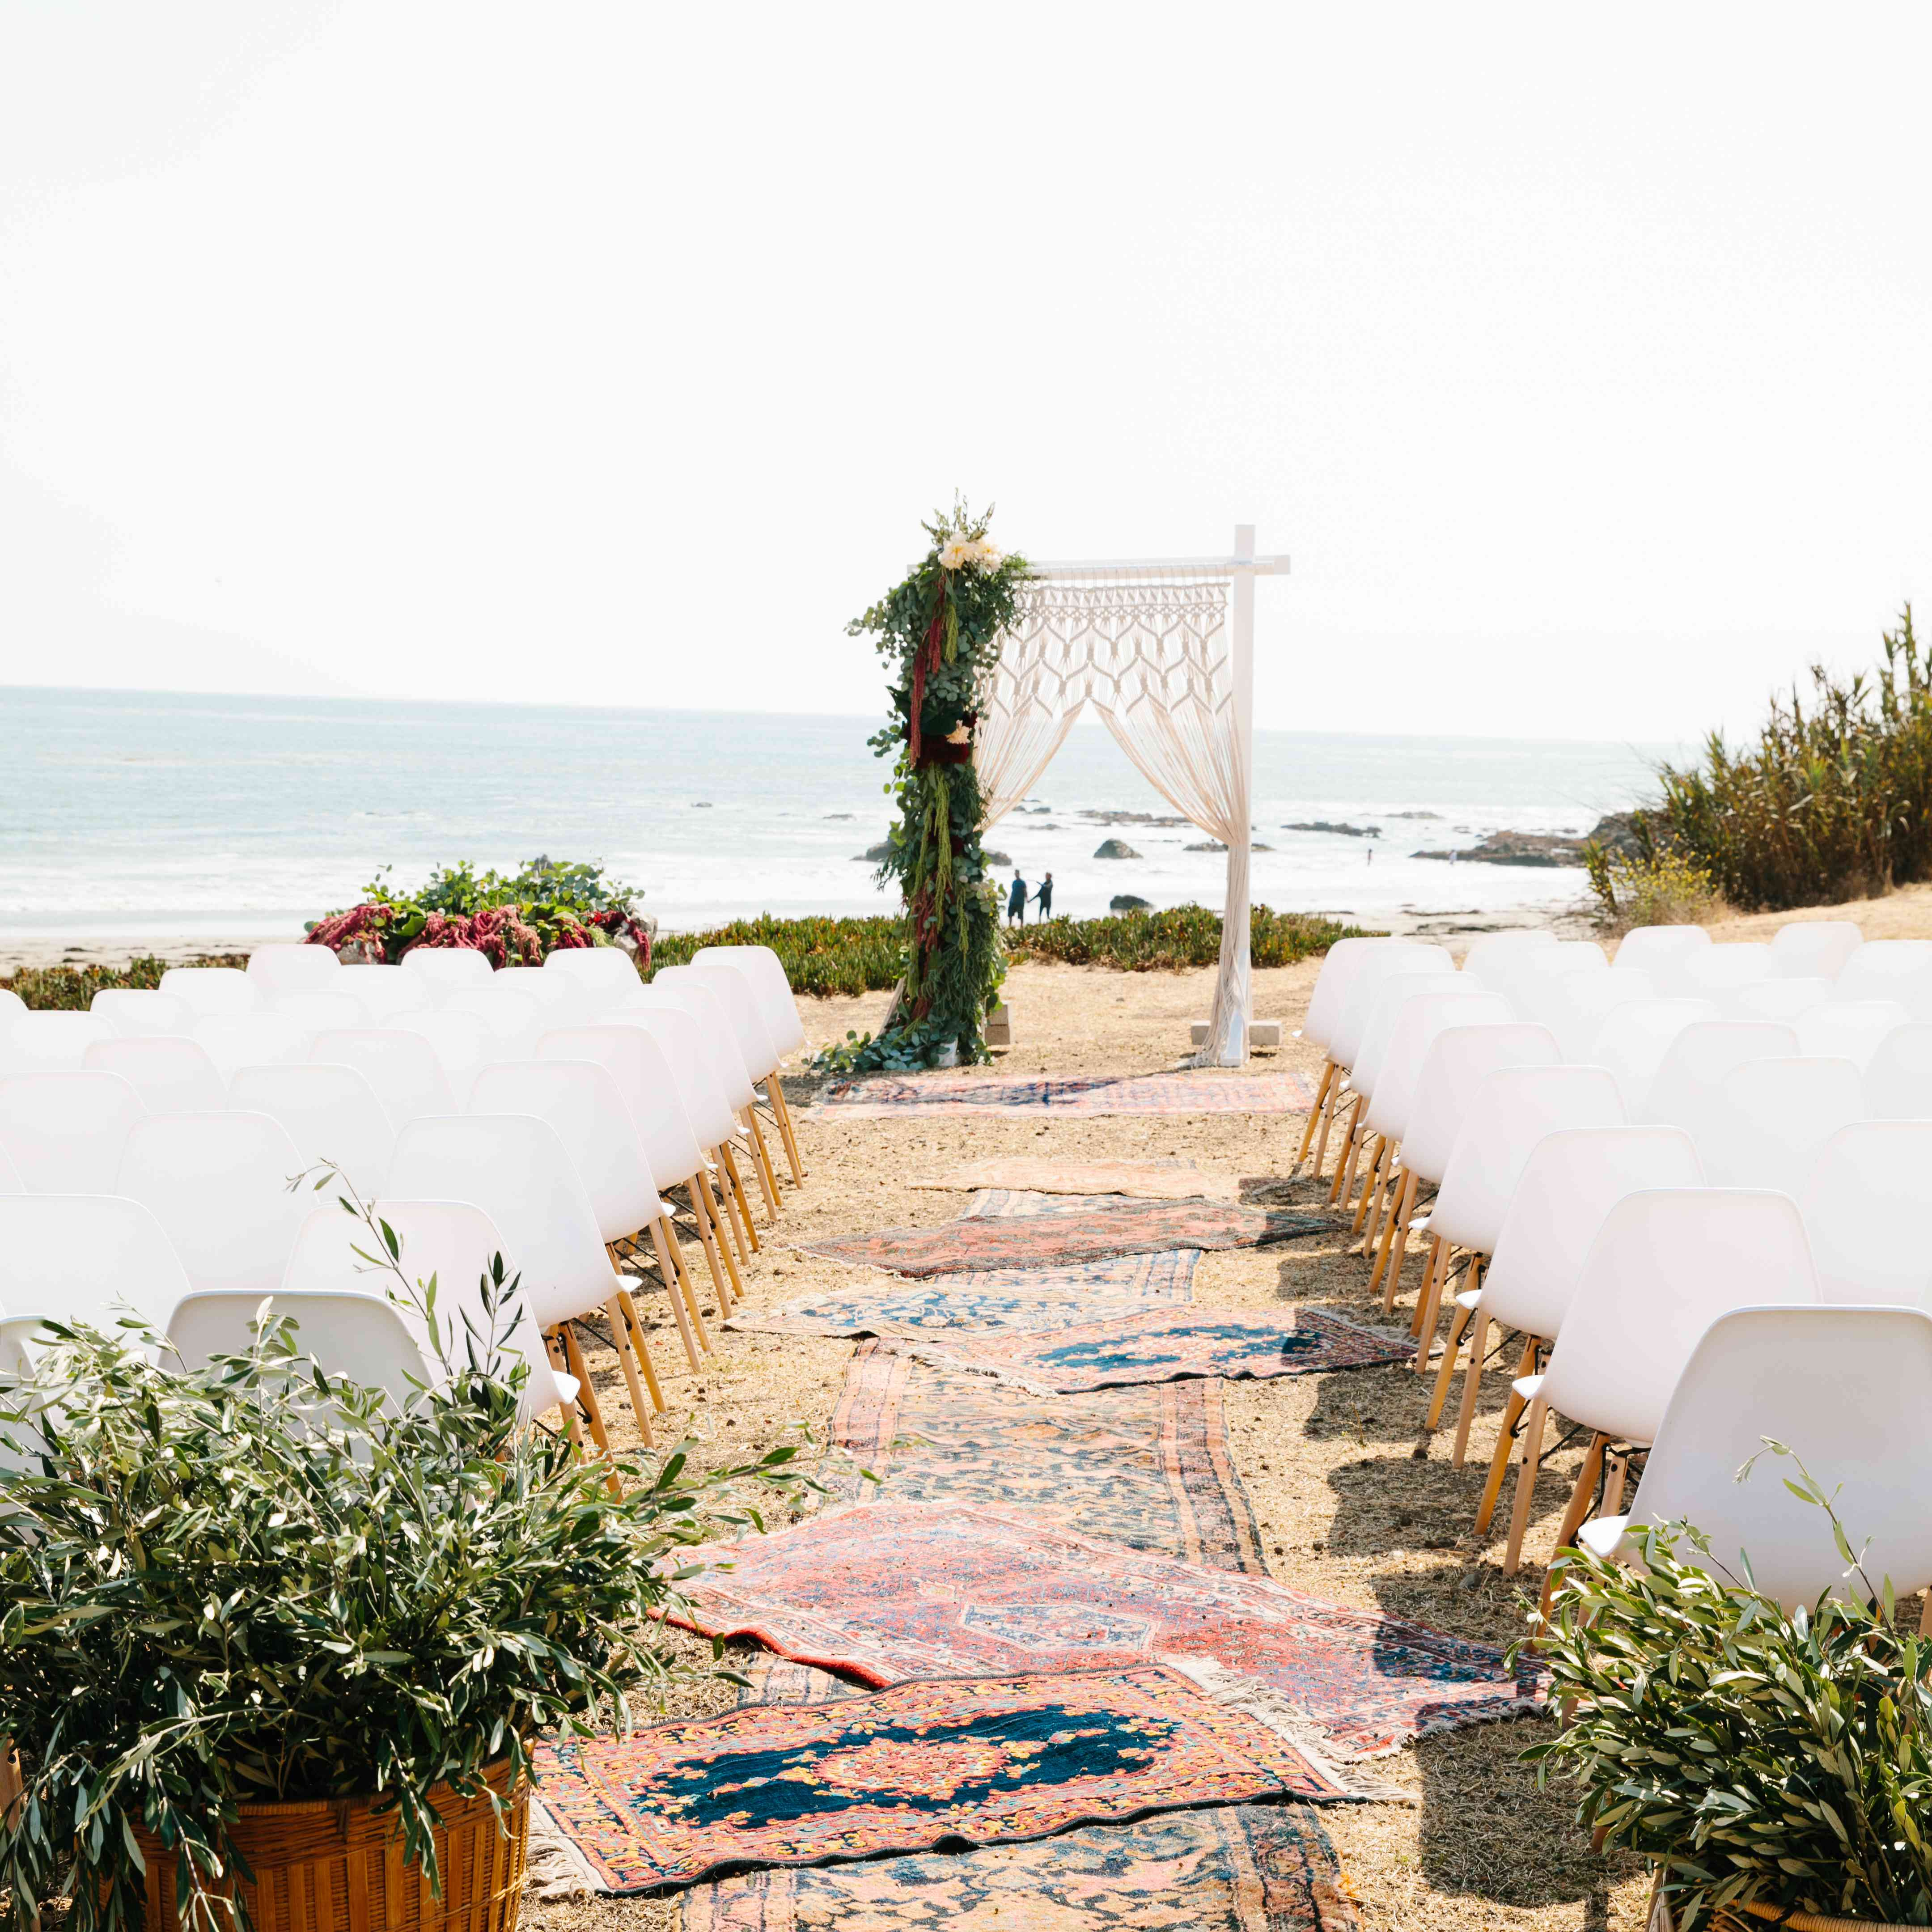 Wedding aisle on the beach with multiple rugs lining the aisle